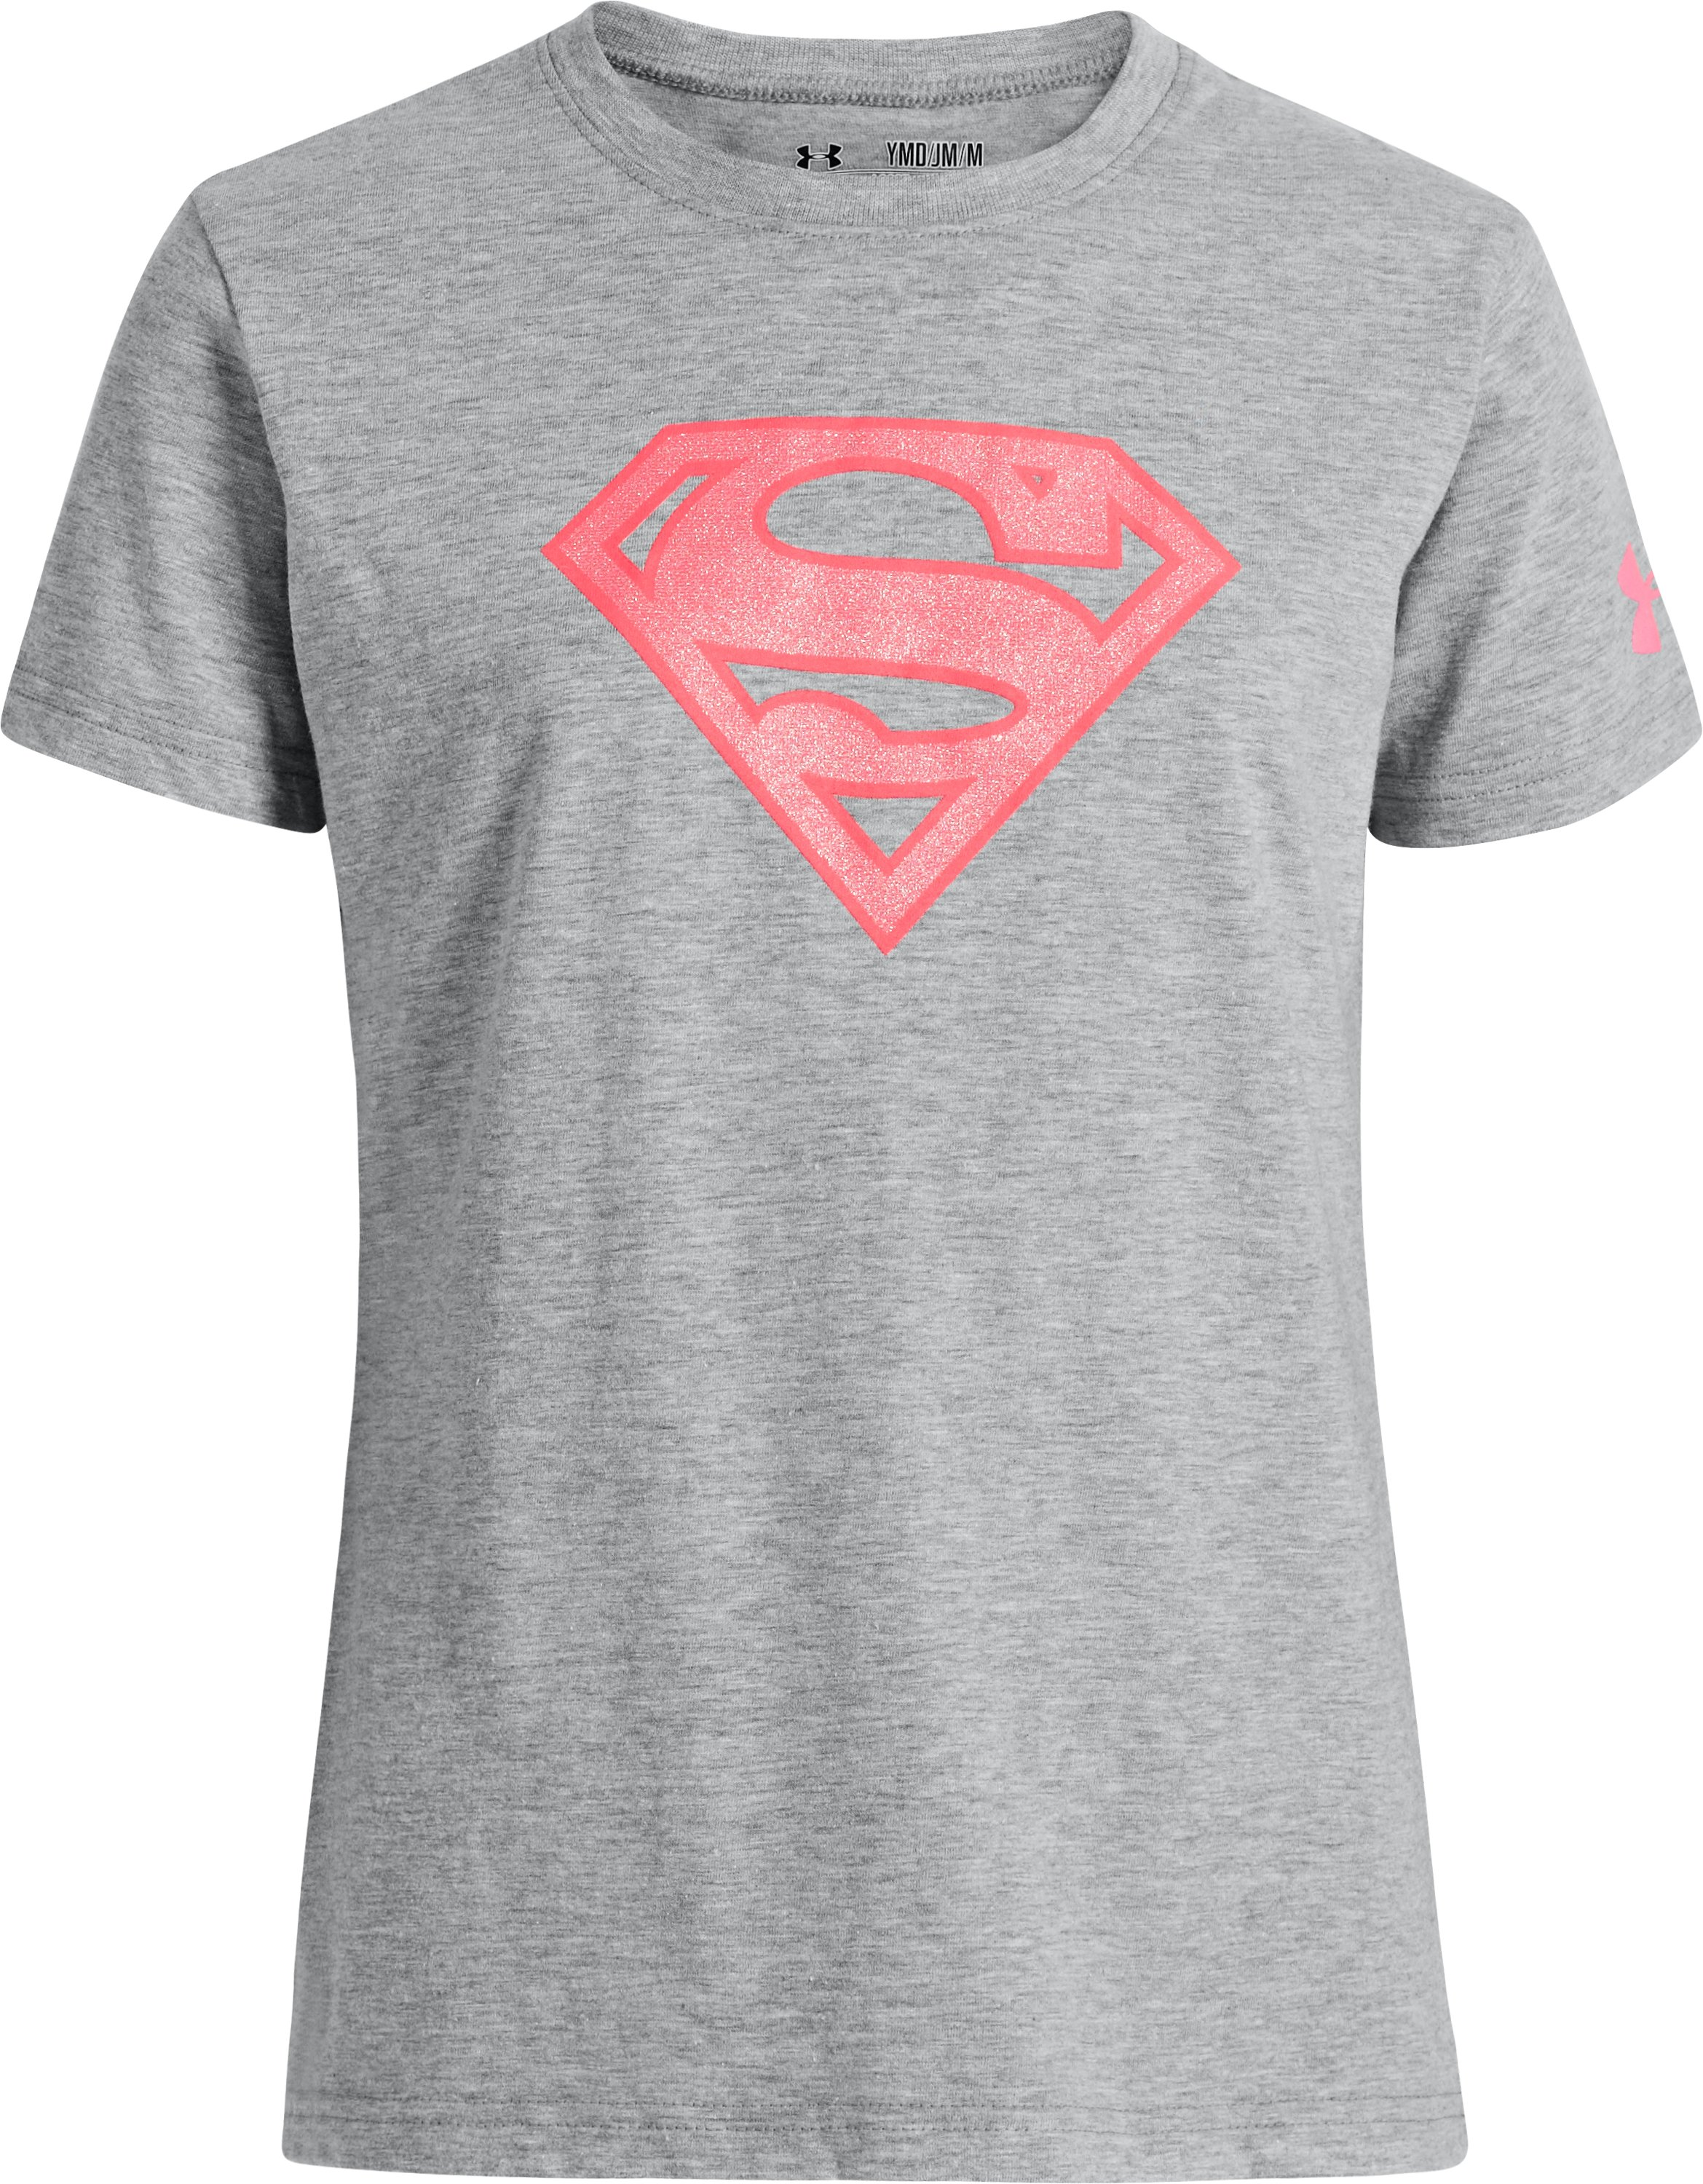 Girls' Under Armour® Alter Ego Supergirl T-Shirt, True Gray Heather, zoomed image